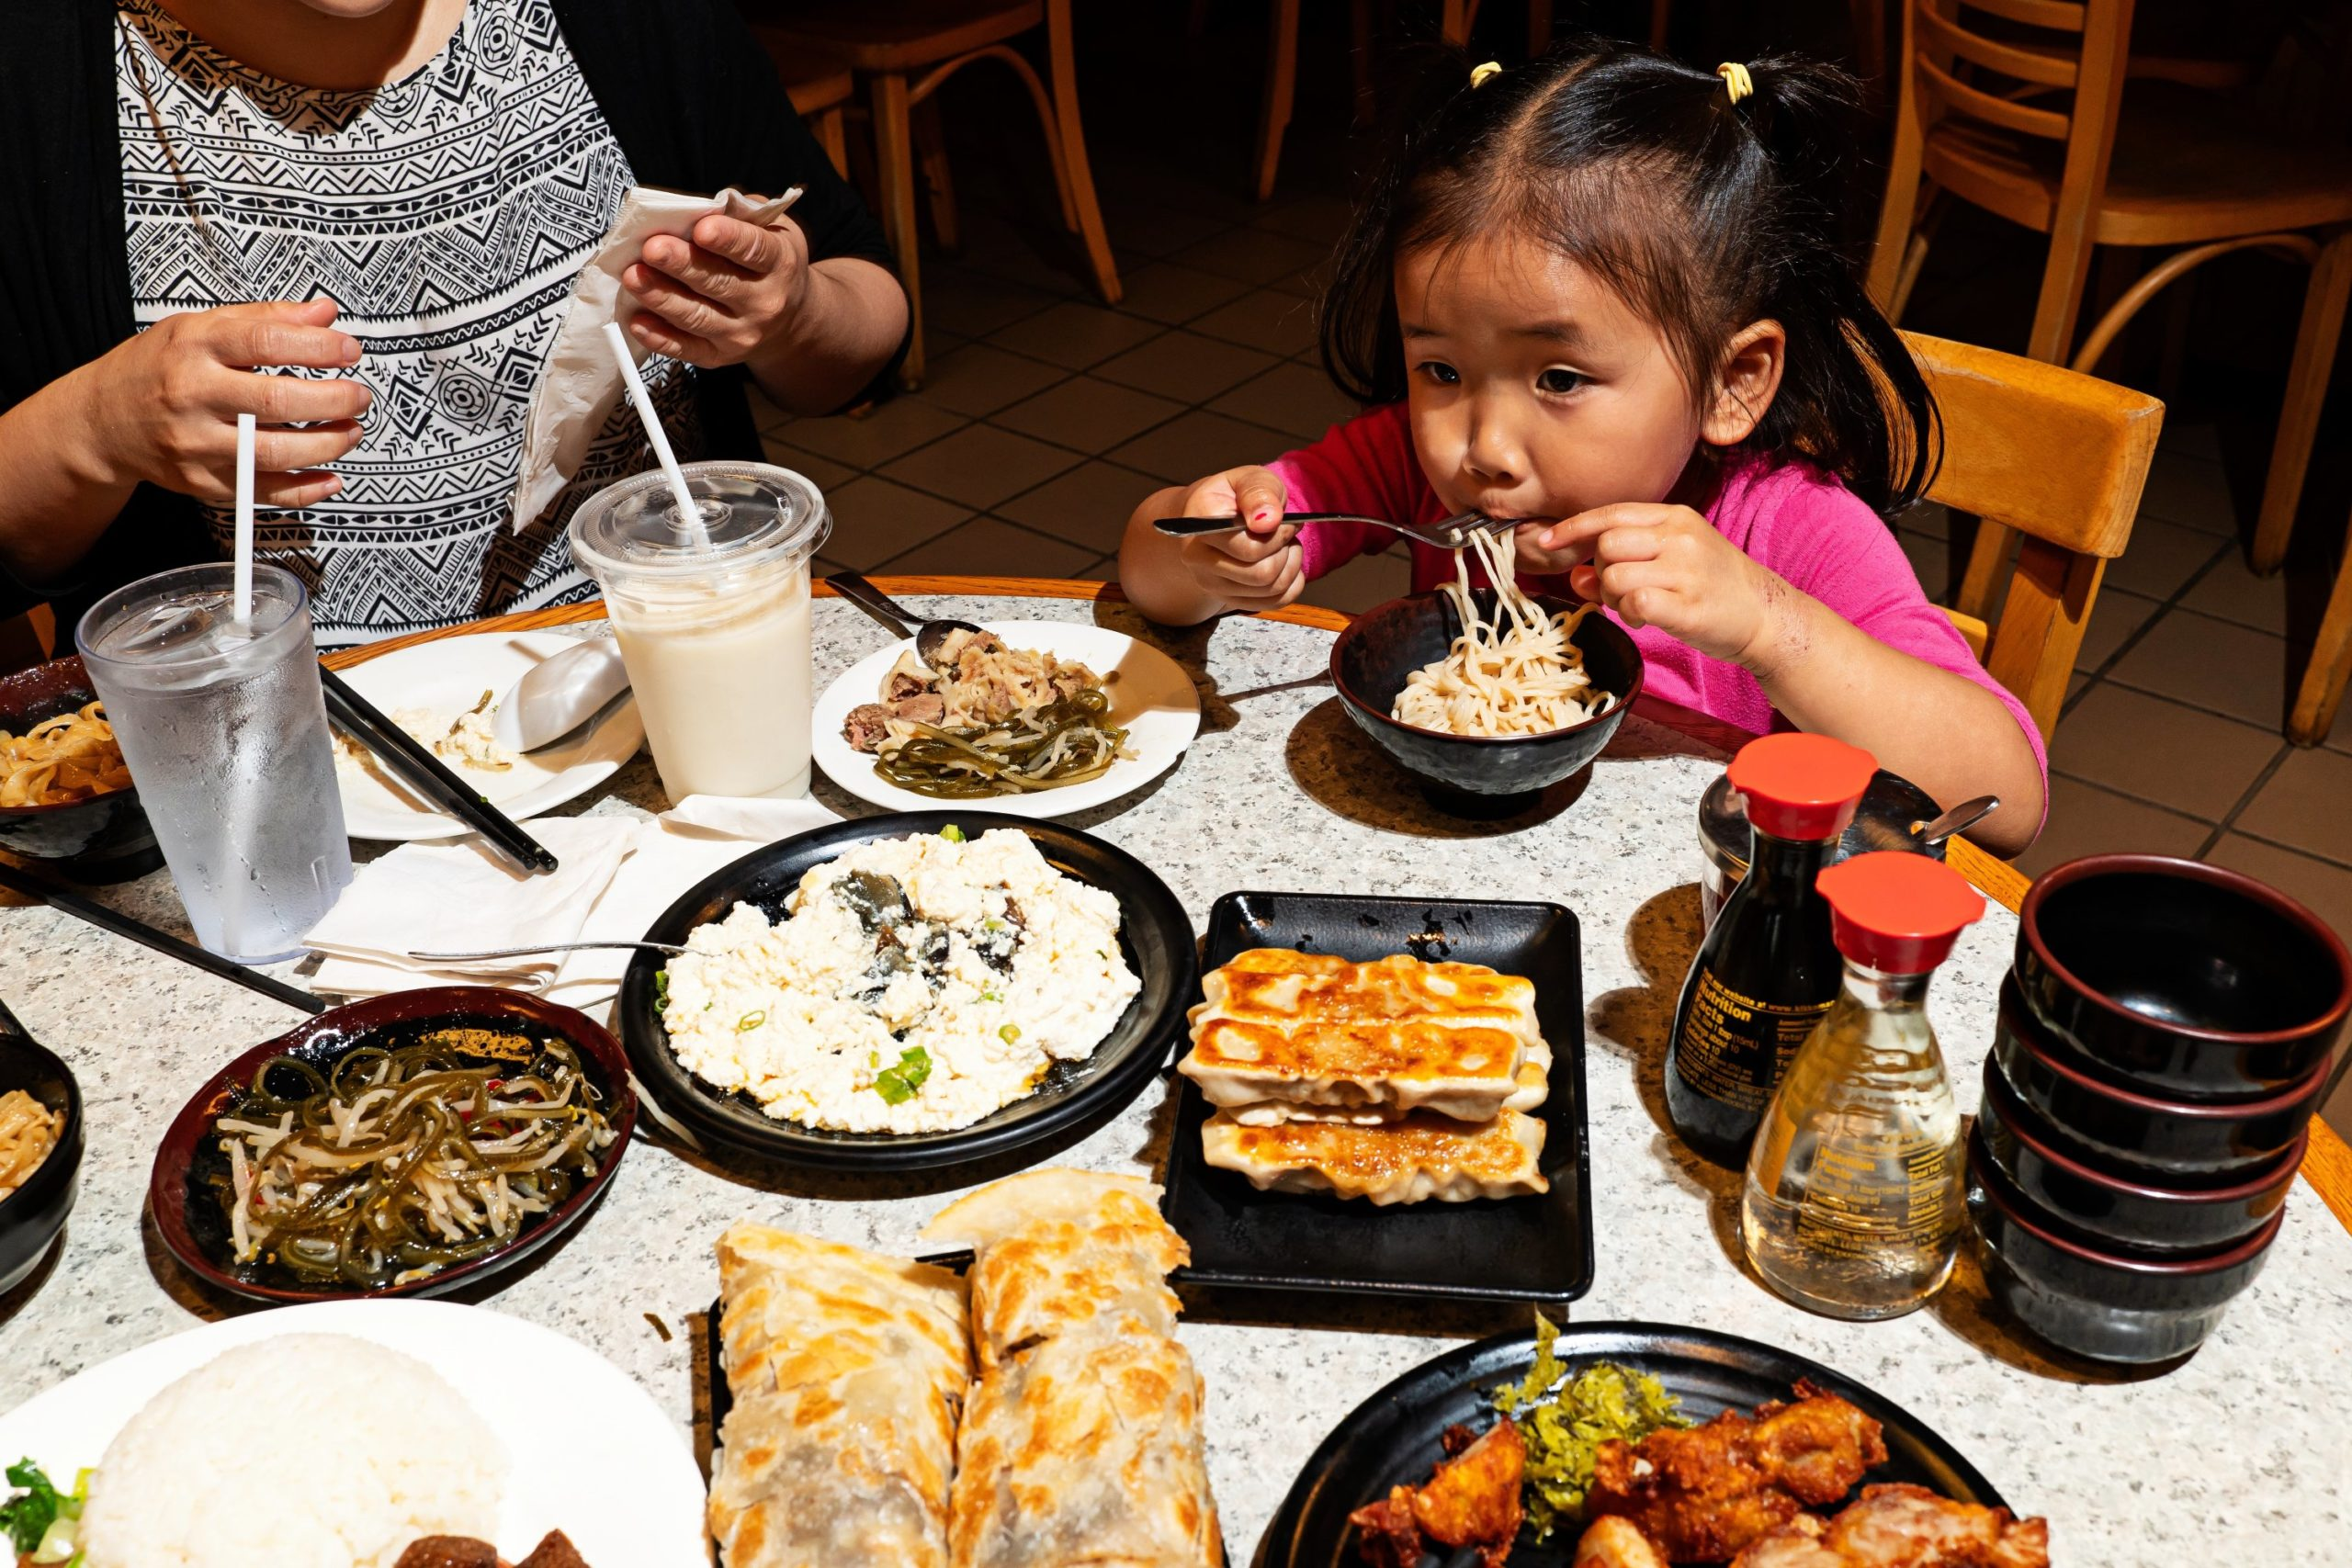 Asian Restaurants Open On Christmas Day 2020 Colorado Springs Where to Get the Best Chinese Food Around DC on Christmas Day